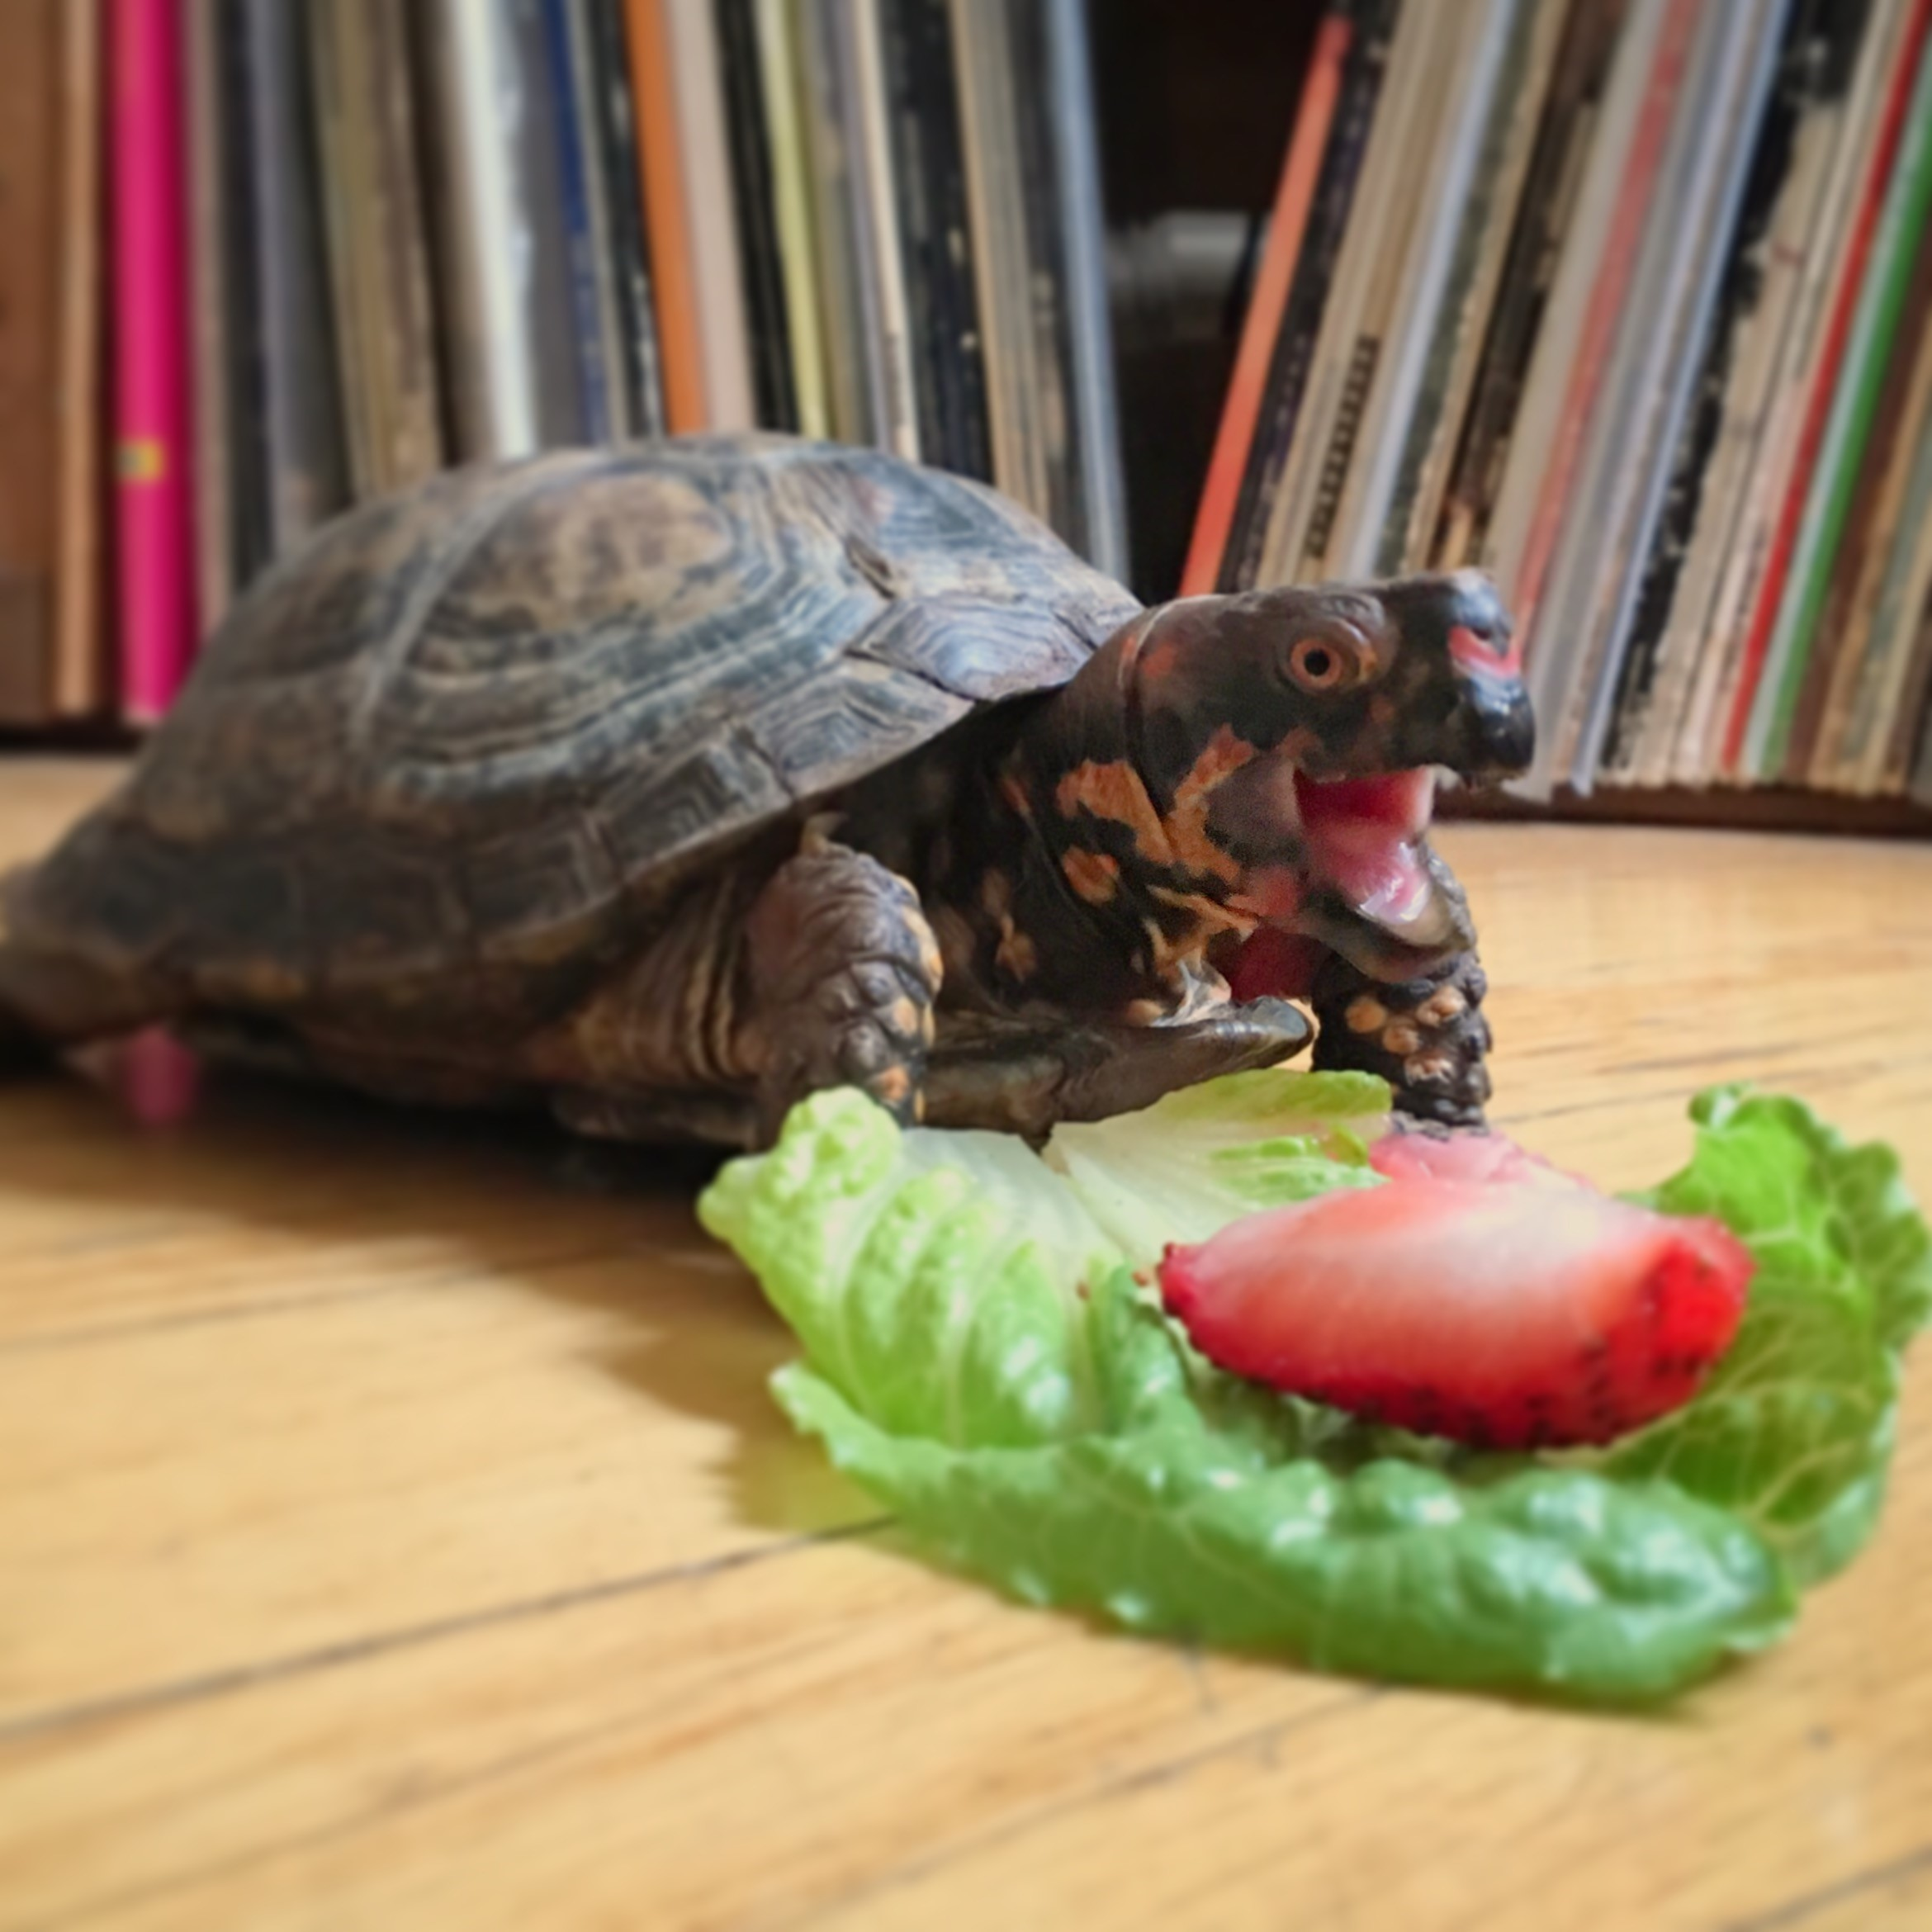 Turtle crawls on wood floor with mouth open. Lettuce and strawberry slice in front of turtle.